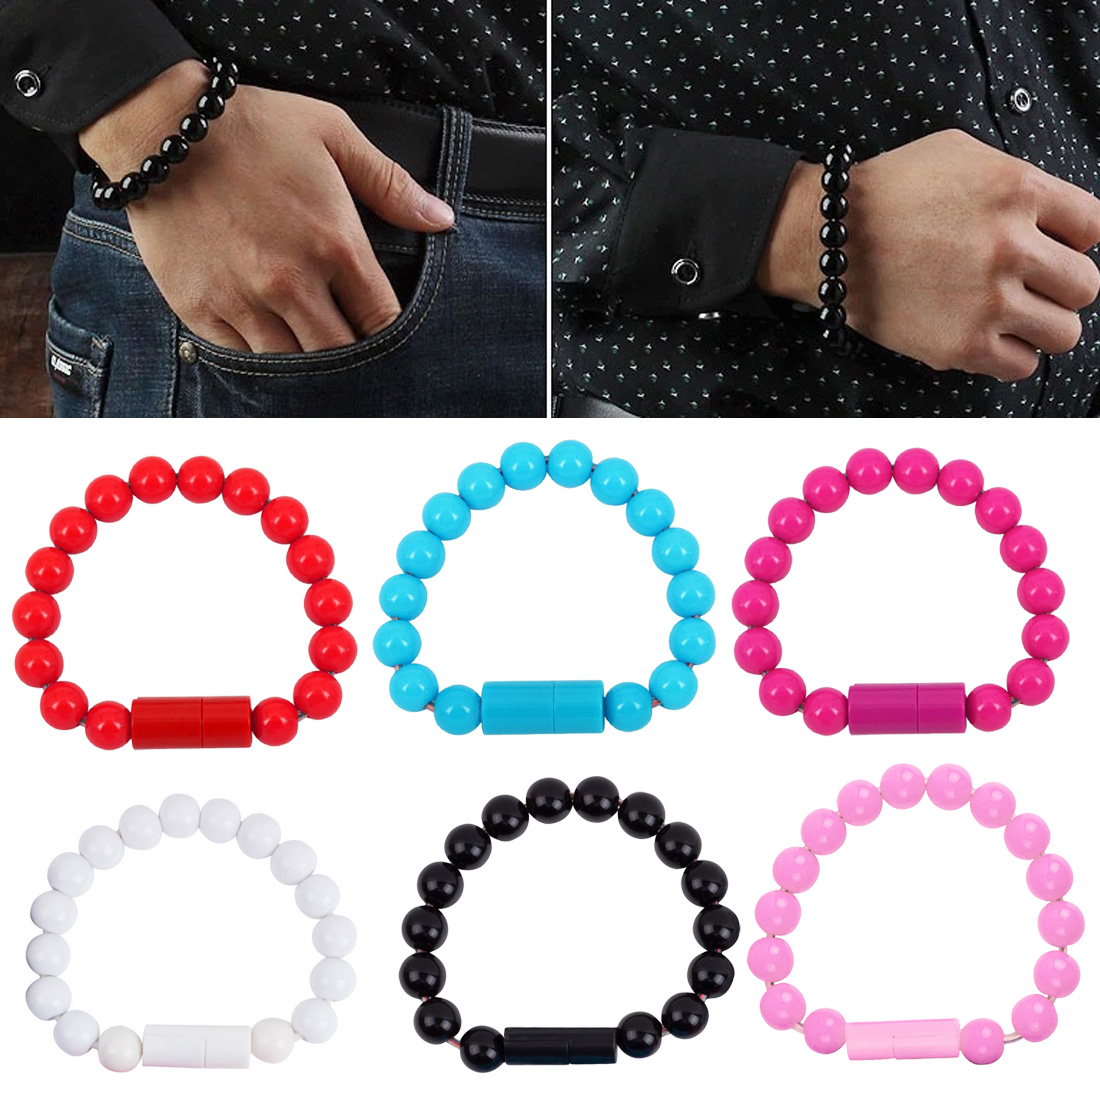 New Wearable Usb Charging Bracelet Beads Charging Cable Portable Usb